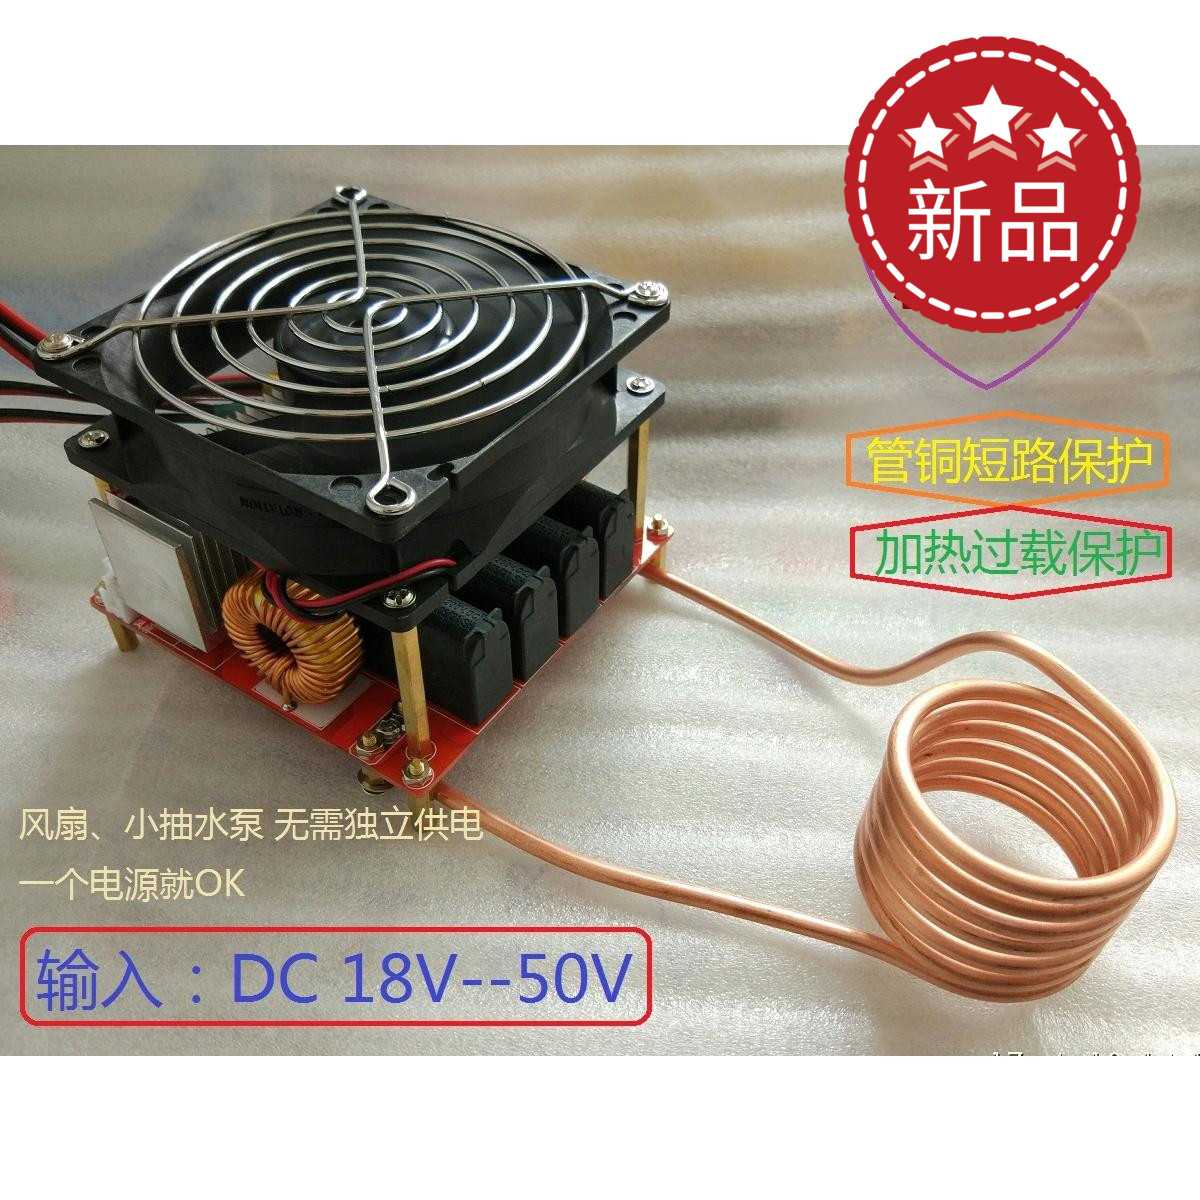 2017 NEW Type ZVS Induction Heating High Frequency Induction Heating, Input Voltage 18V-50V Heating / Quenching / Melting zvs high frequency induction heating with over current protection input voltage 18v 50v